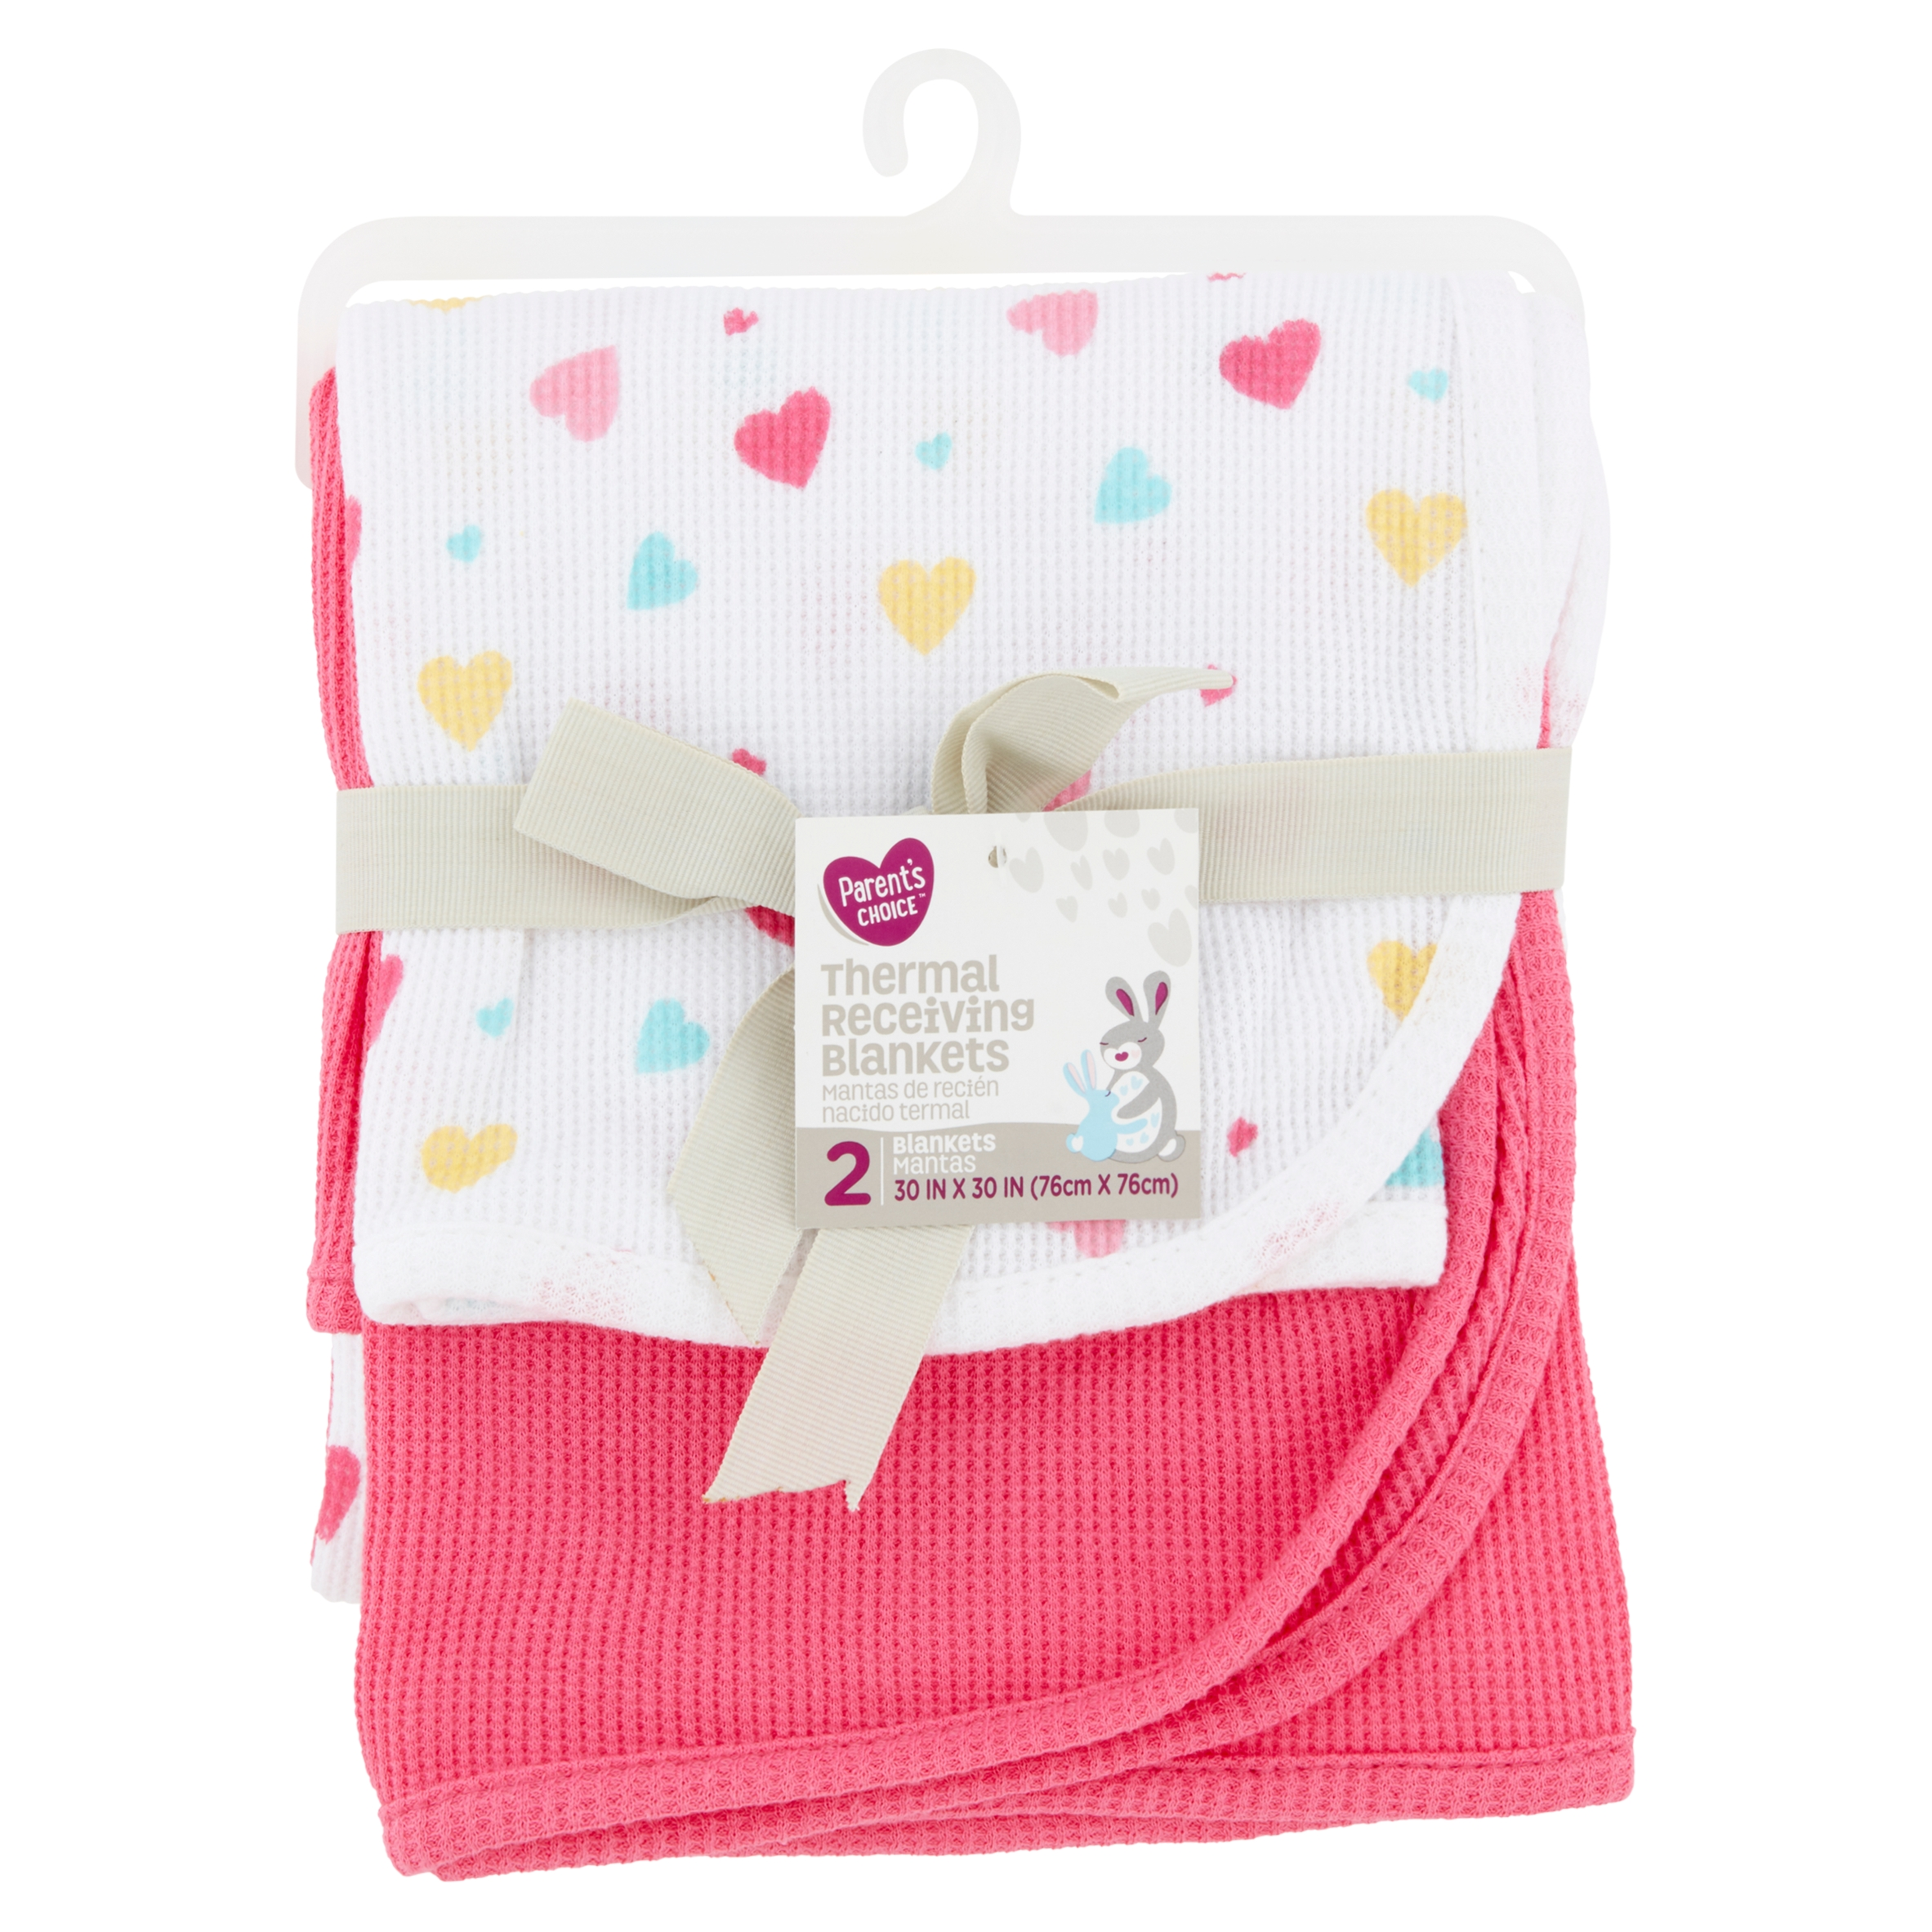 Parent's Choice Thermal Receiving Blankets, Pink, 2 Pack